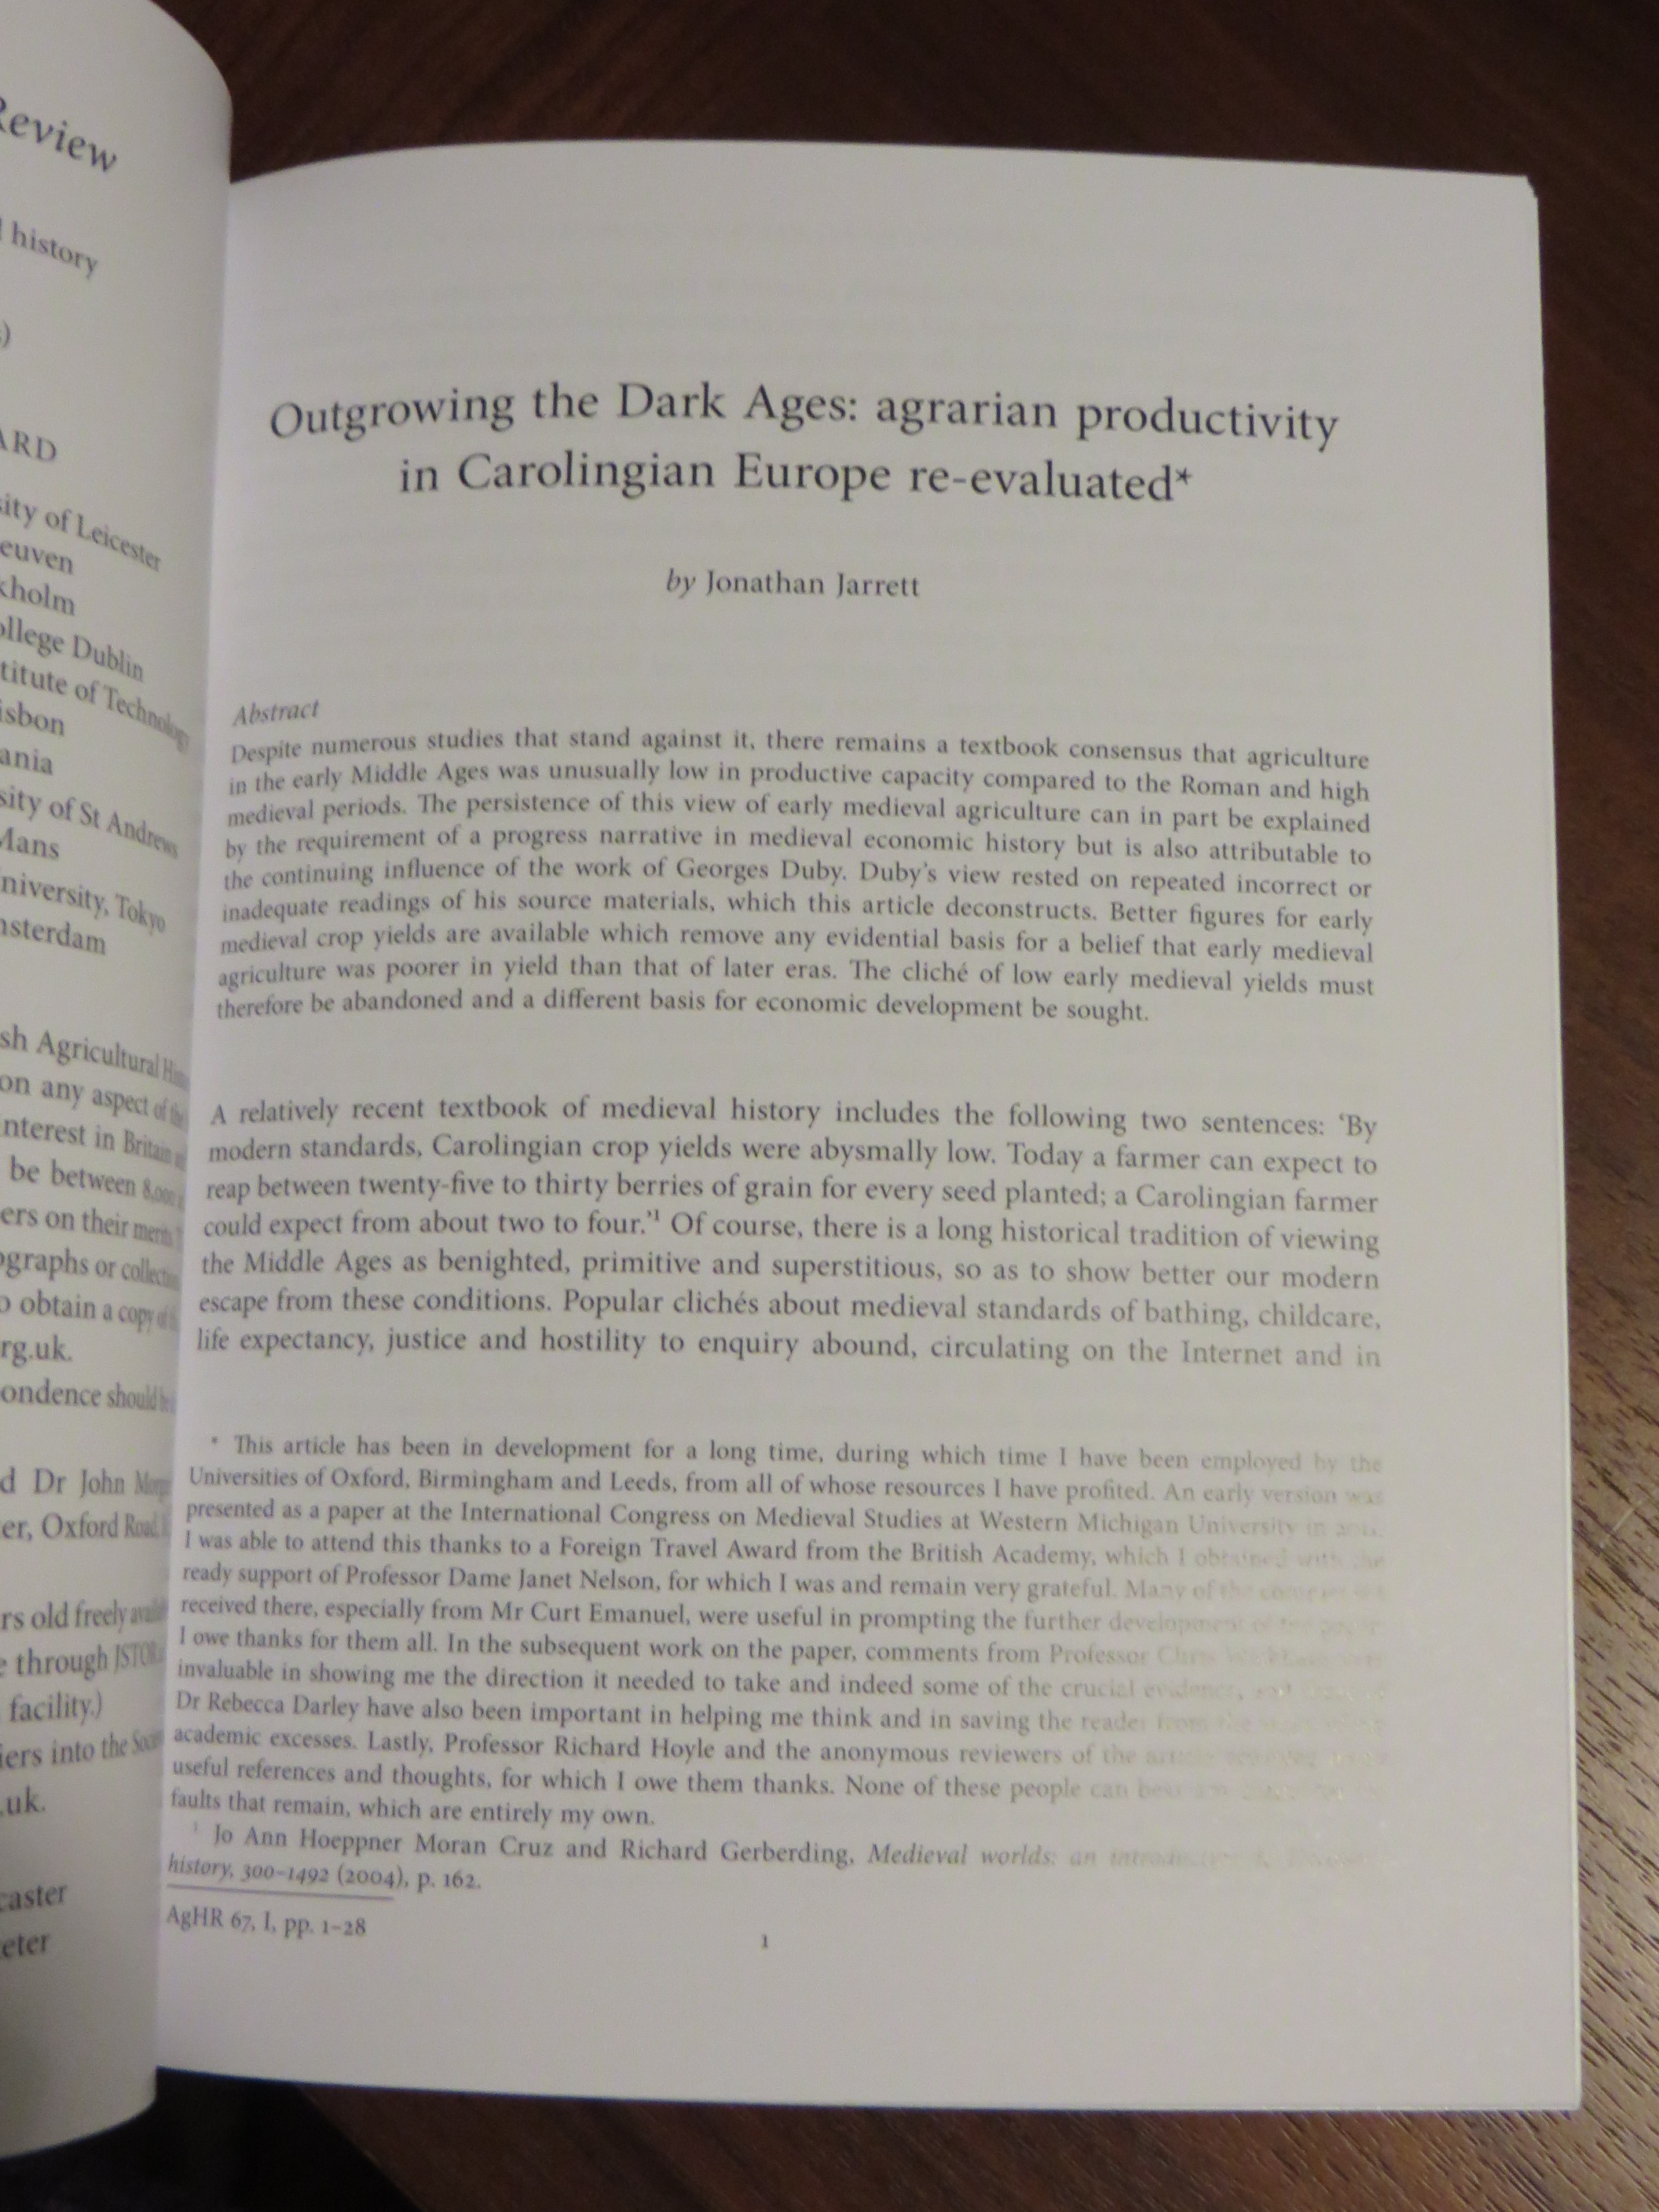 """Opening page of Jonathan Jarrett, """"Outgrowing the Dark Ages: agrarian productivity in Carolingian Europe re-evaluated"""" in Agricultural History Review Vol. 67 (Reading 2019), pp. 1-28"""